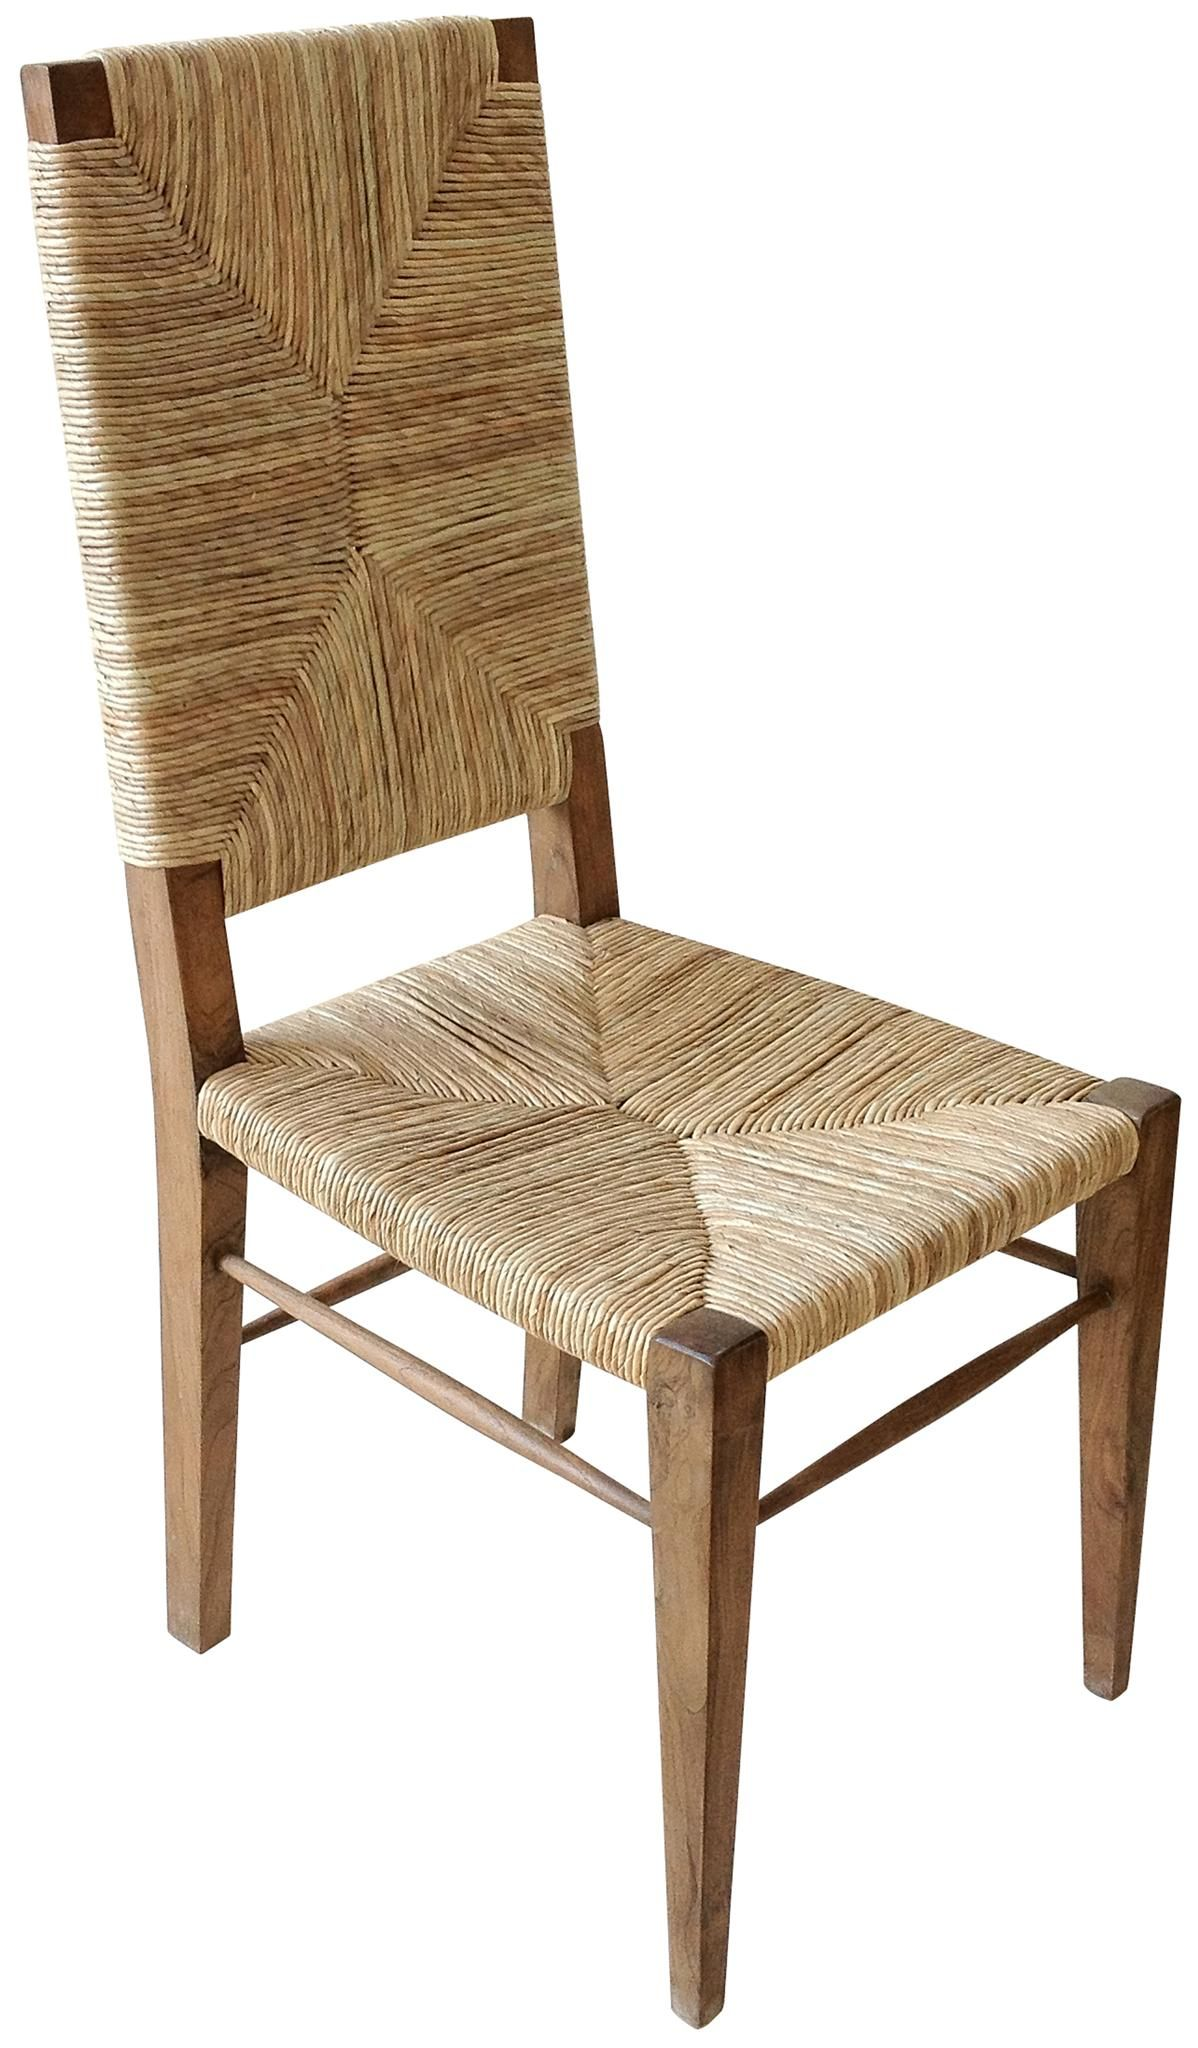 Beau Stewart Teak And Seagrass Dining Chair With Woven Seat And Back Also  Available In Smaller Size